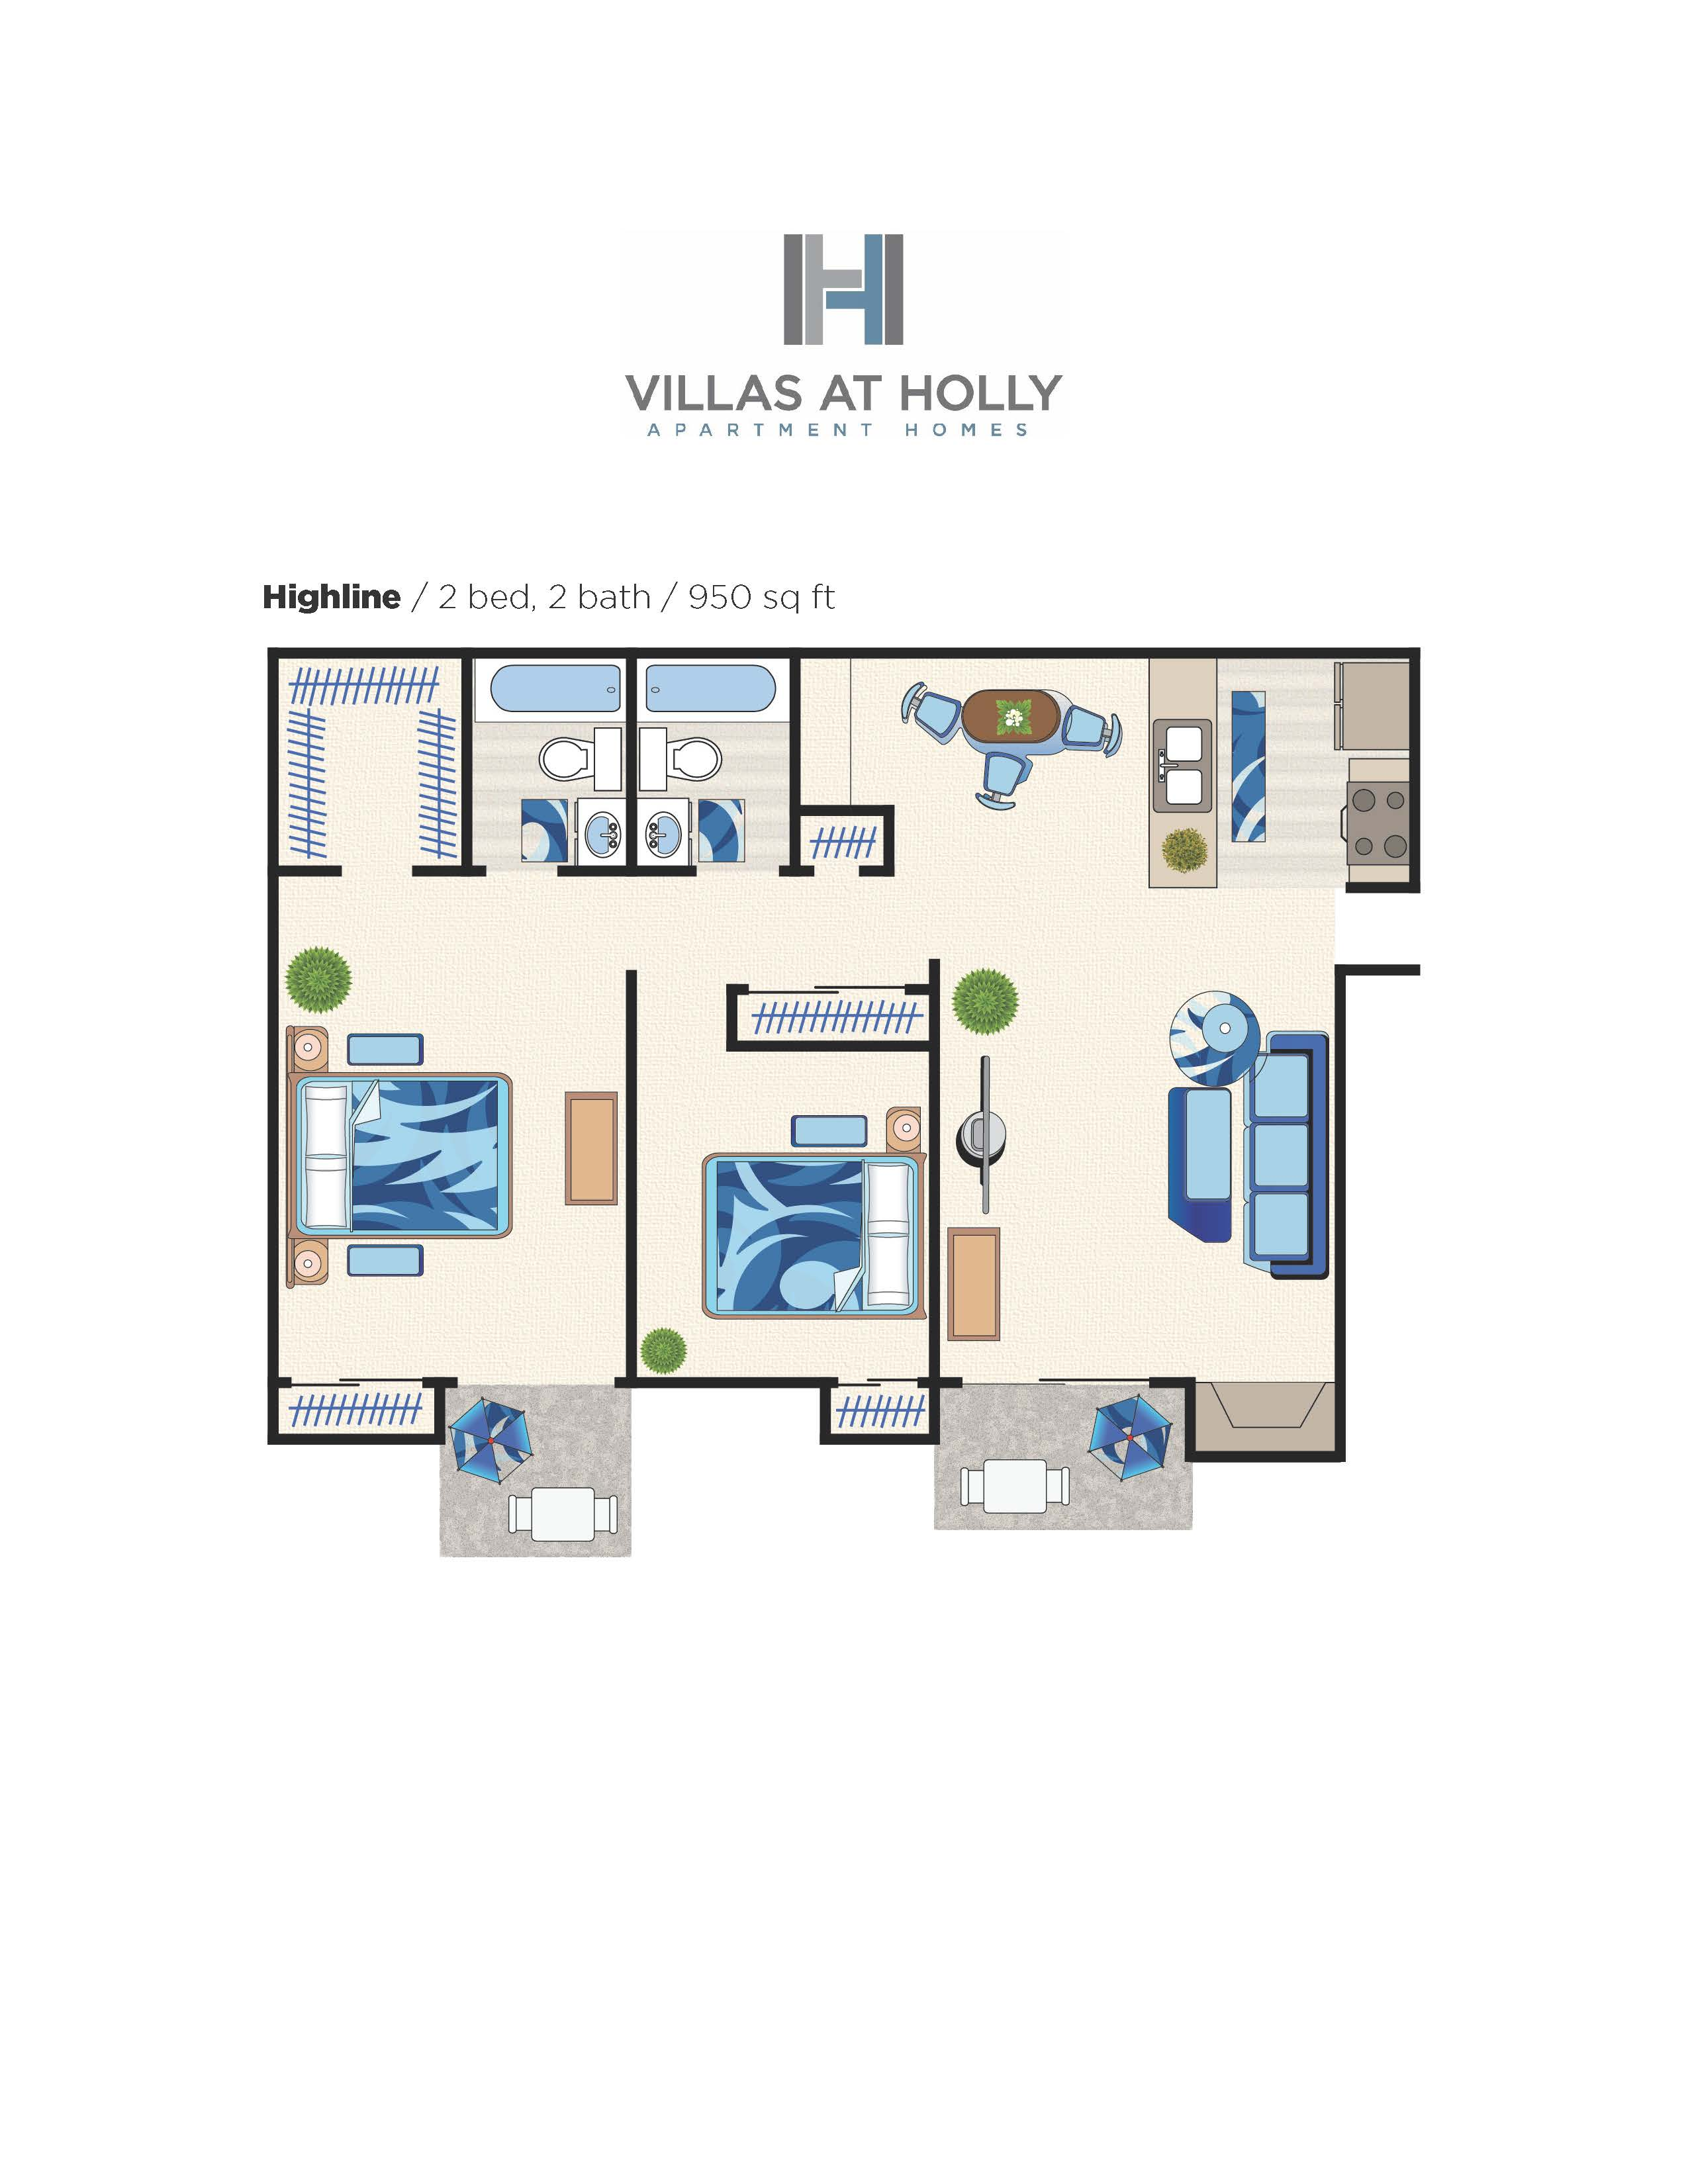 2x2 Highline floorplan